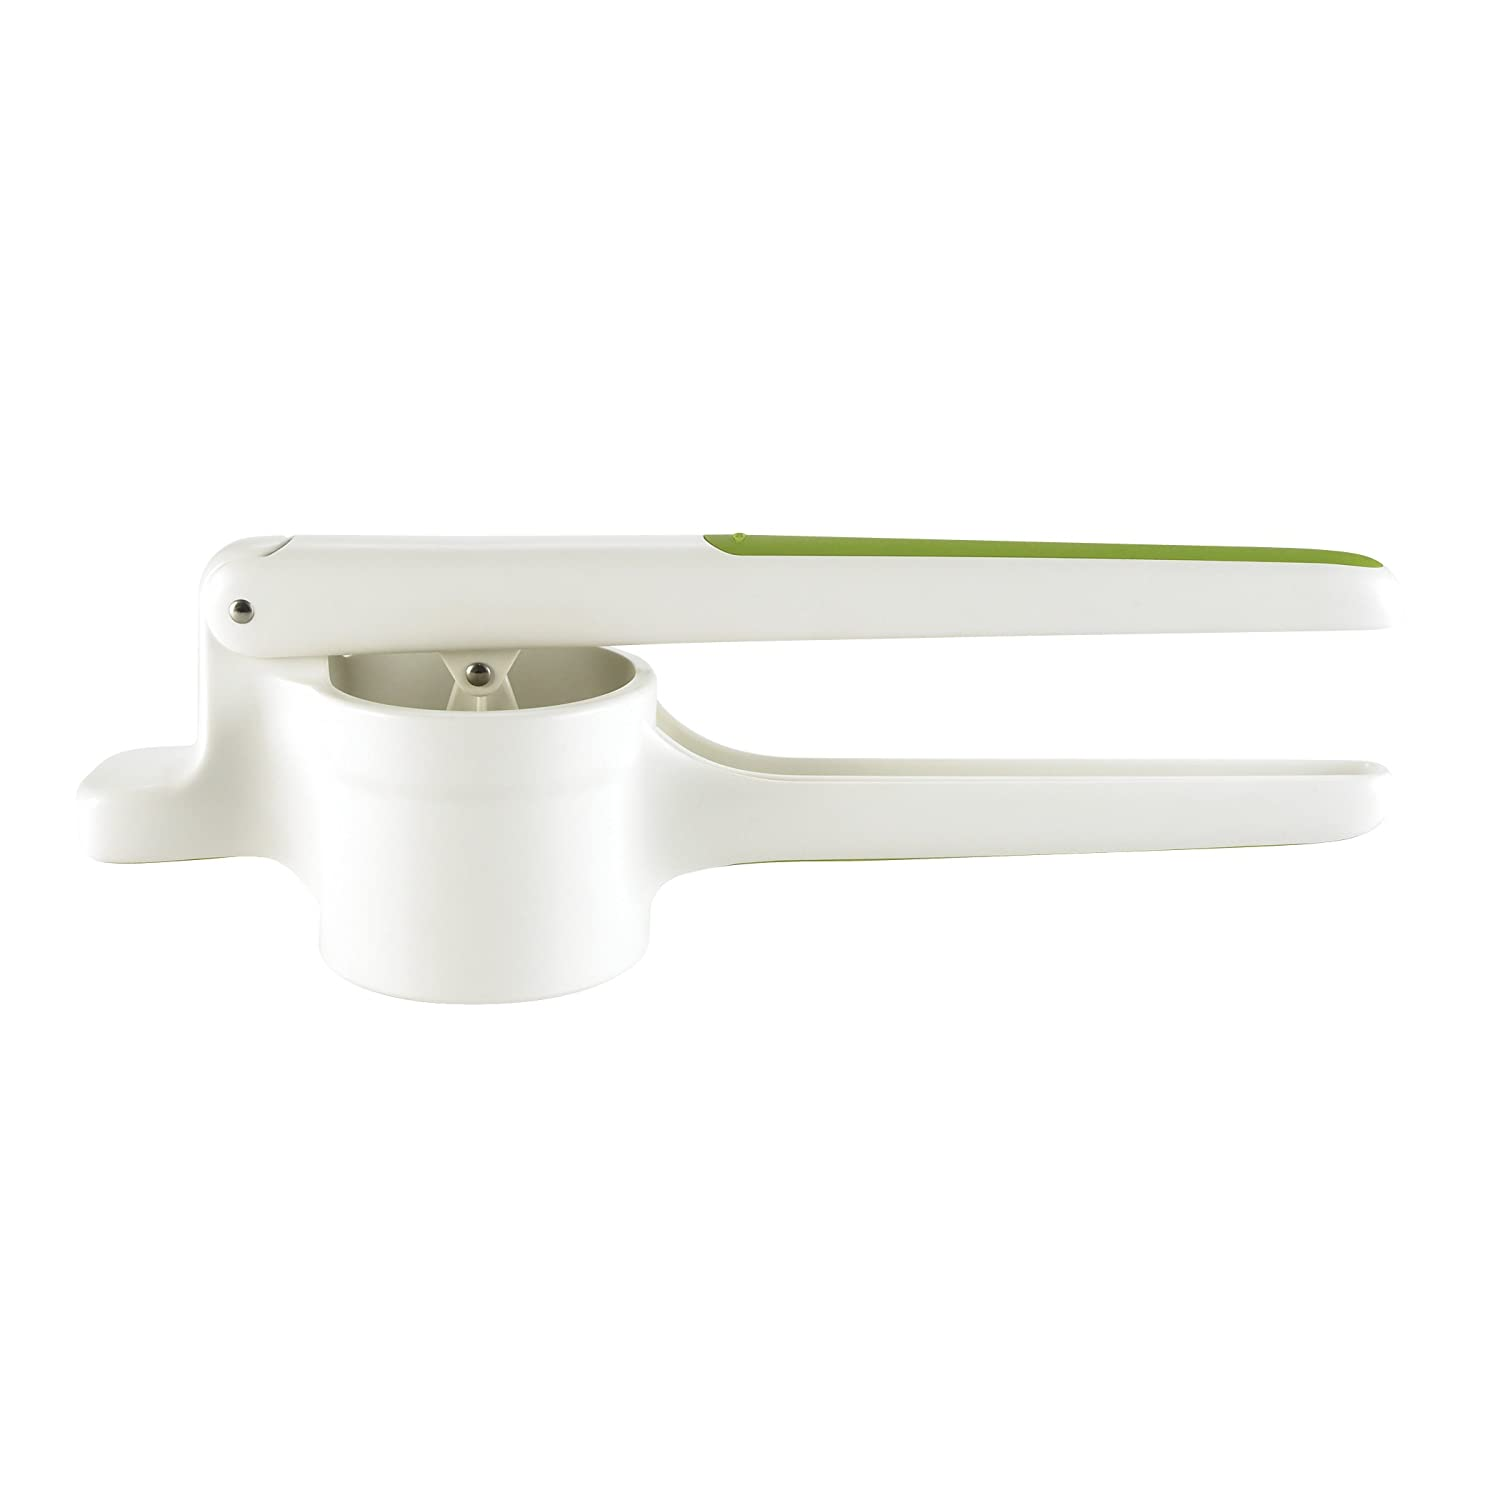 OXO Tot Baby Food Ricer, White/Green (Discontinued by Manufacturer)